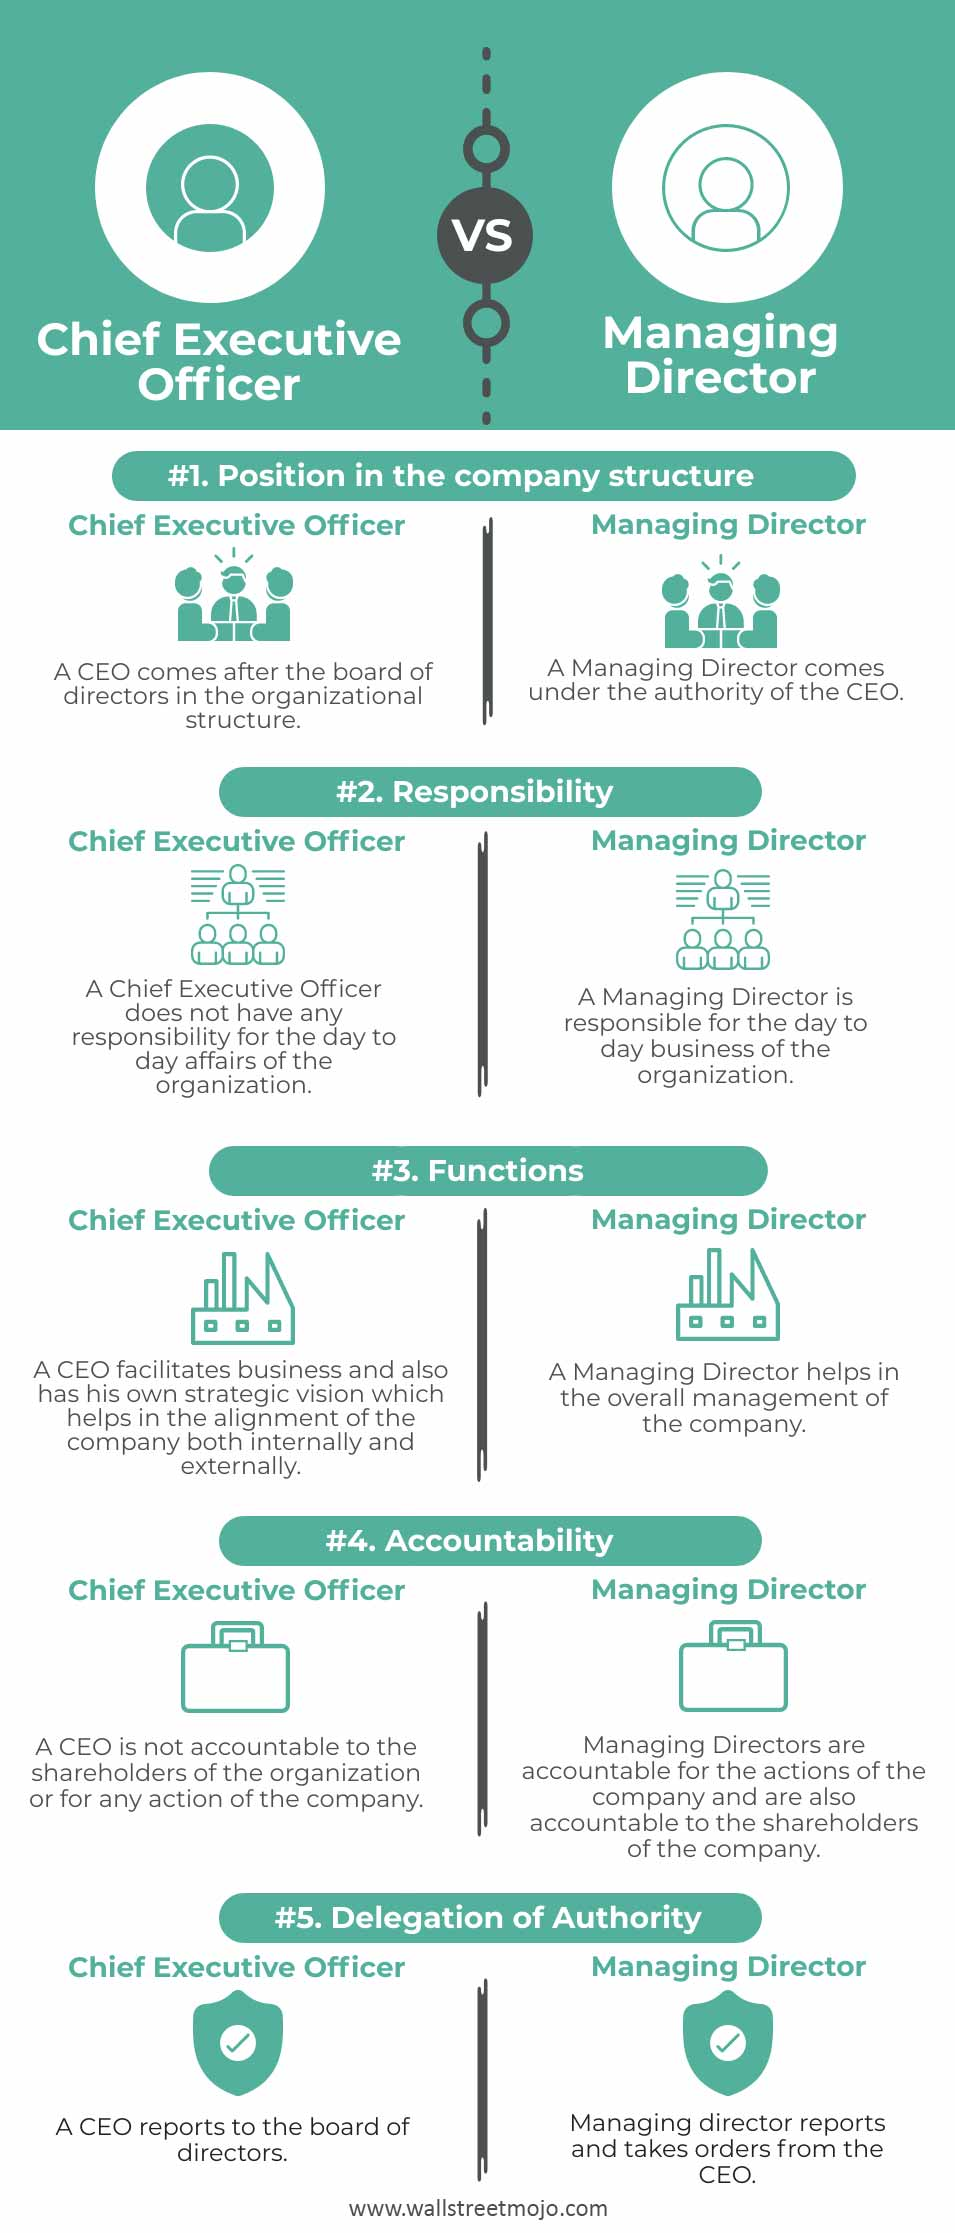 Chief-Executive-Officer-vs-Managing-Director-info